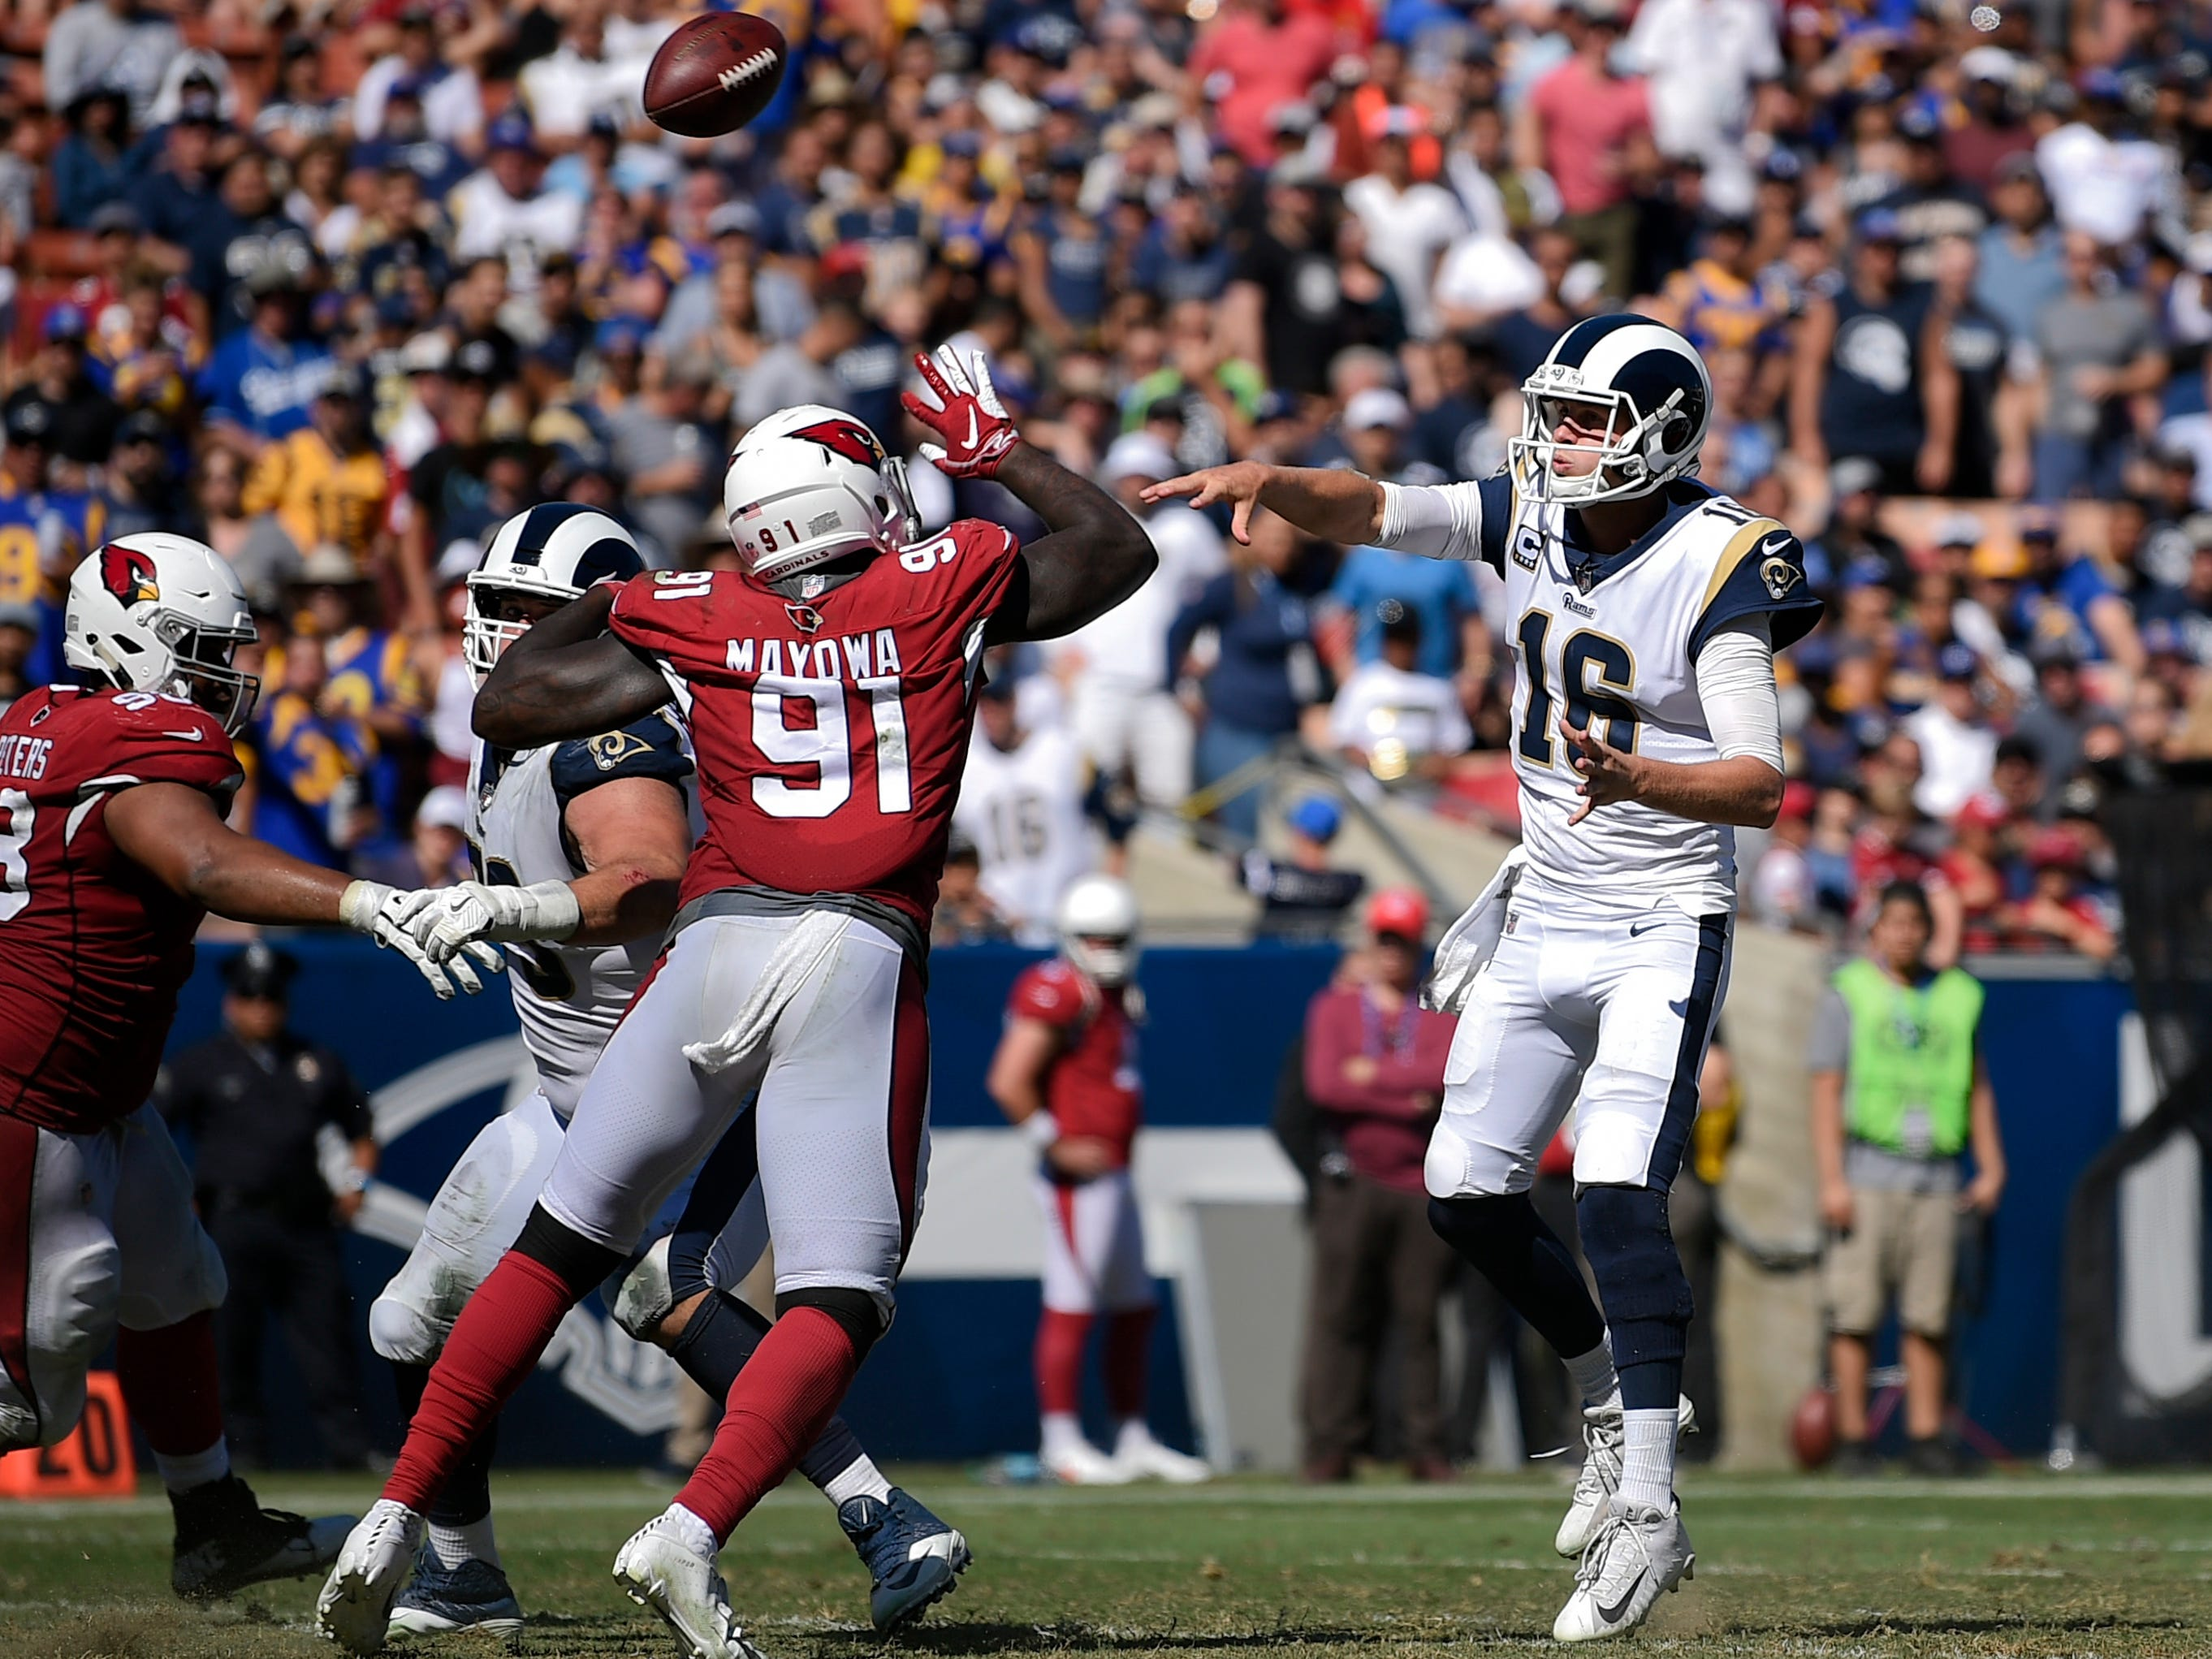 Sep 16, 2018; Los Angeles, CA, USA; Los Angeles Rams quarterback Jared Goff (16) passes for a two-point conversion during the second half against the Arizona Cardinals at Los Angeles Memorial Coliseum. Mandatory Credit: Kelvin Kuo-USA TODAY Sports